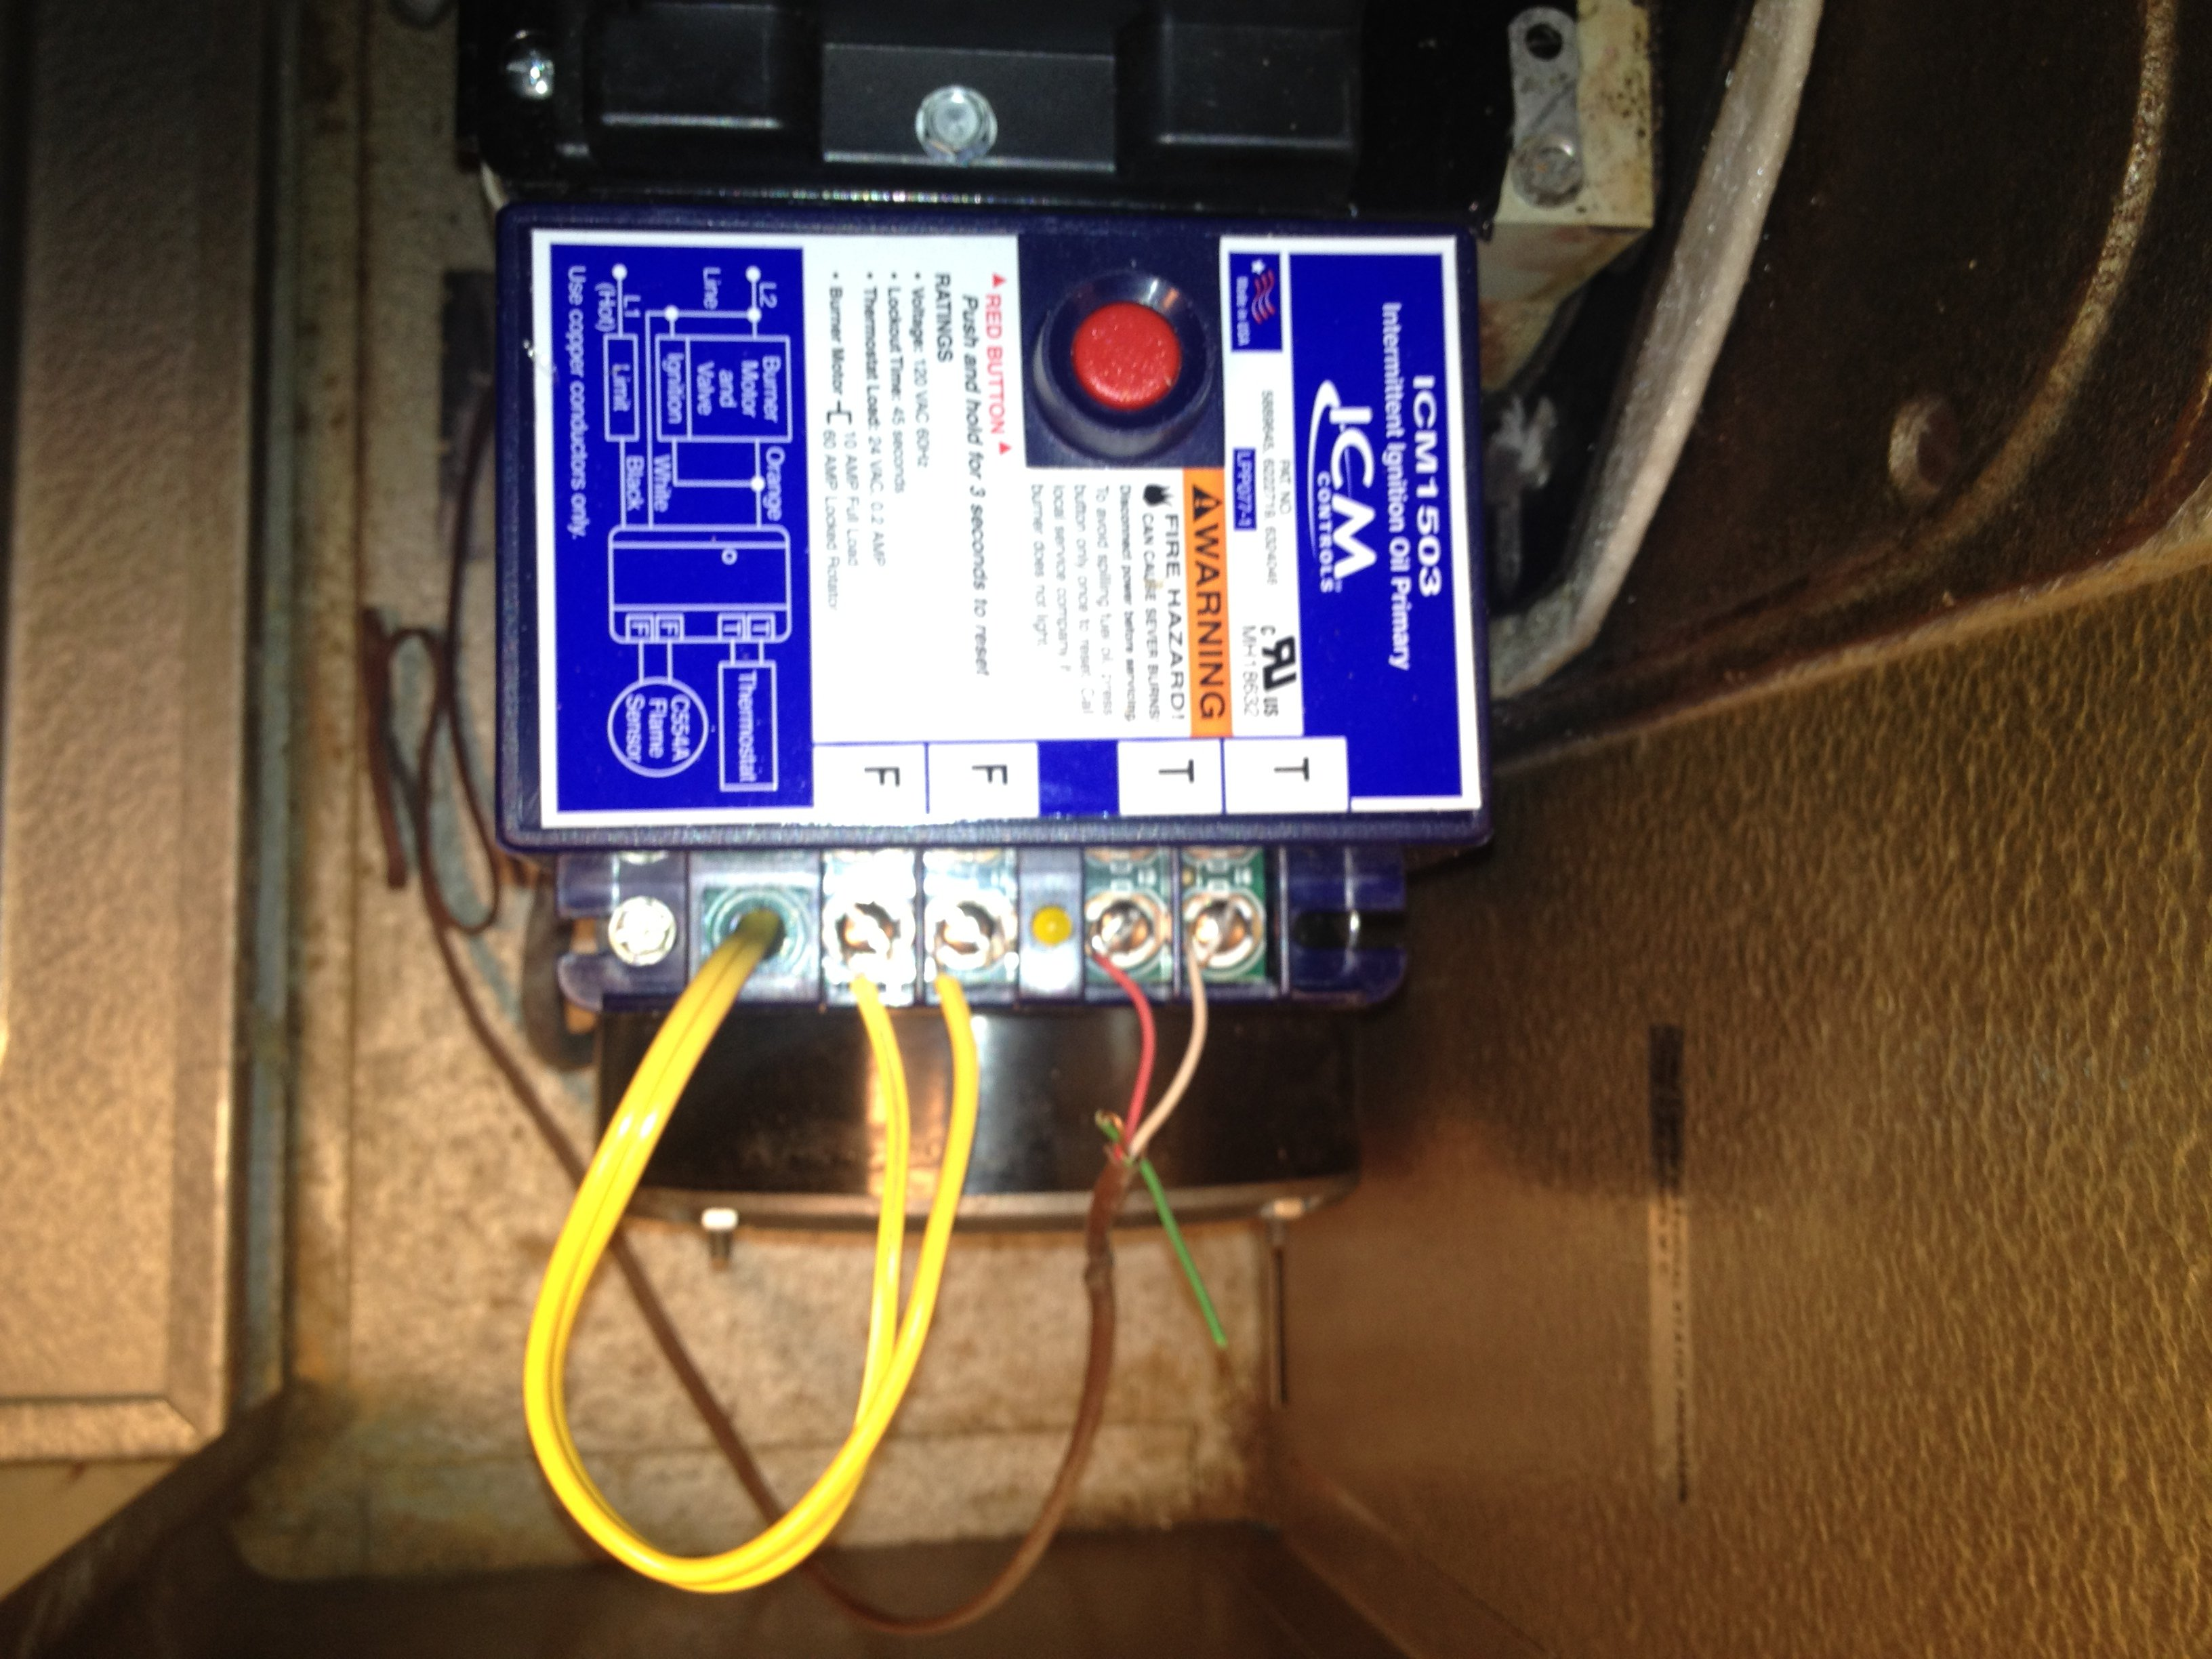 No C Terminal On Furnace To Connect Programmable Thermostat